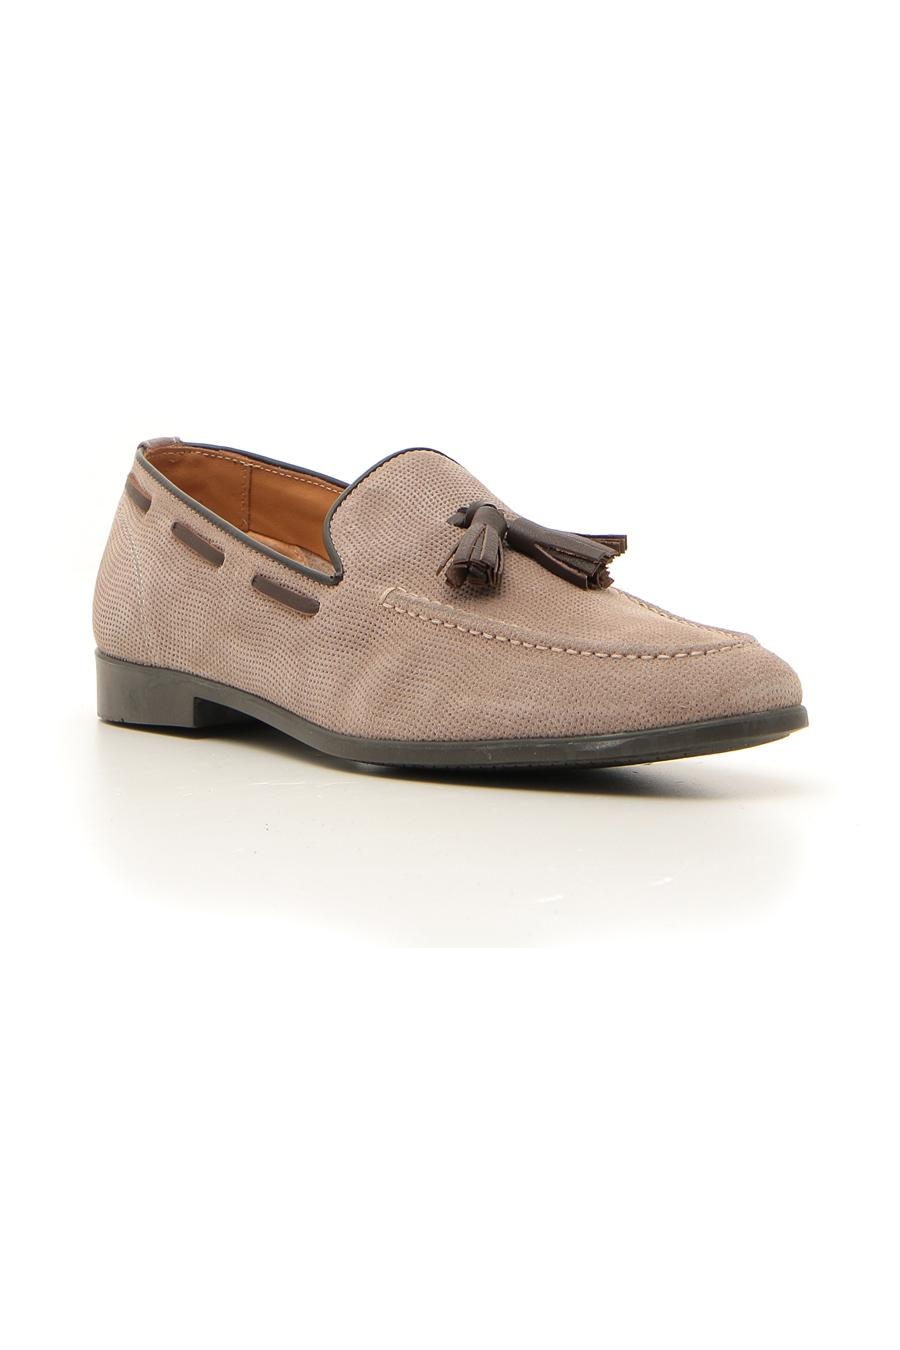 MOCASSINI PITTARELLO 2050 uomo beige | Pittarello